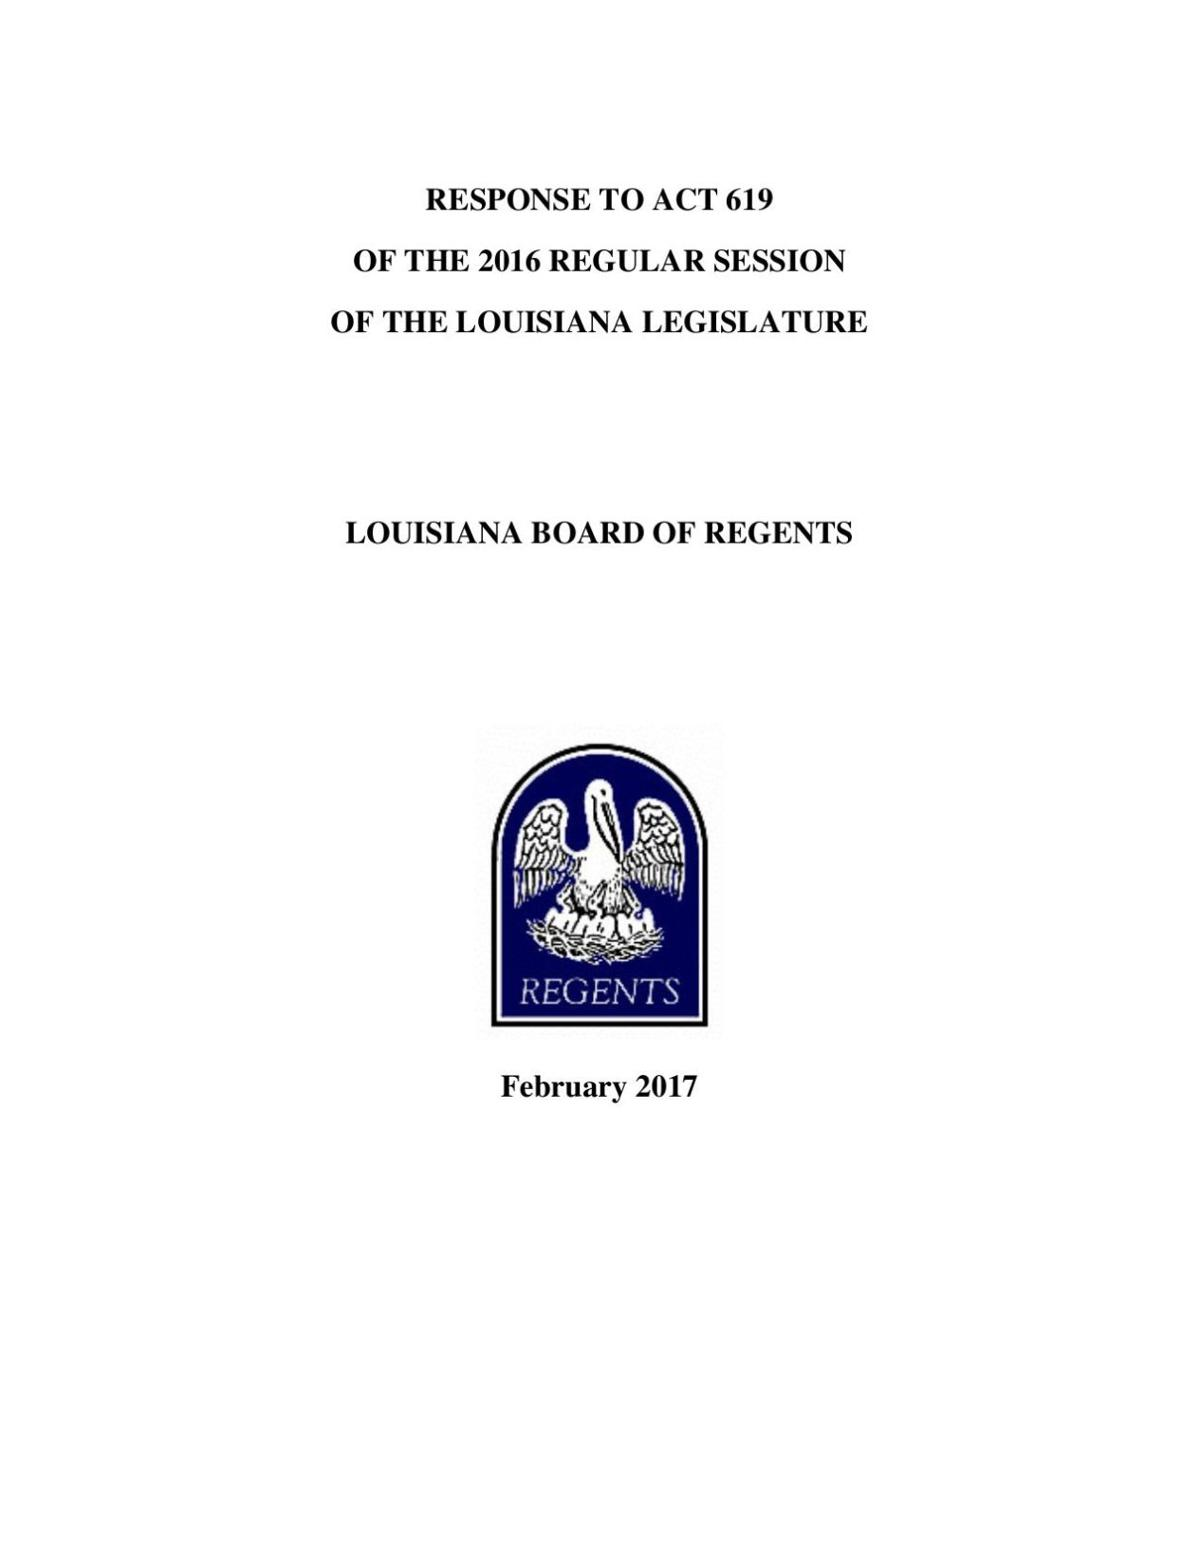 Board of Regents report on higher education, February 2017